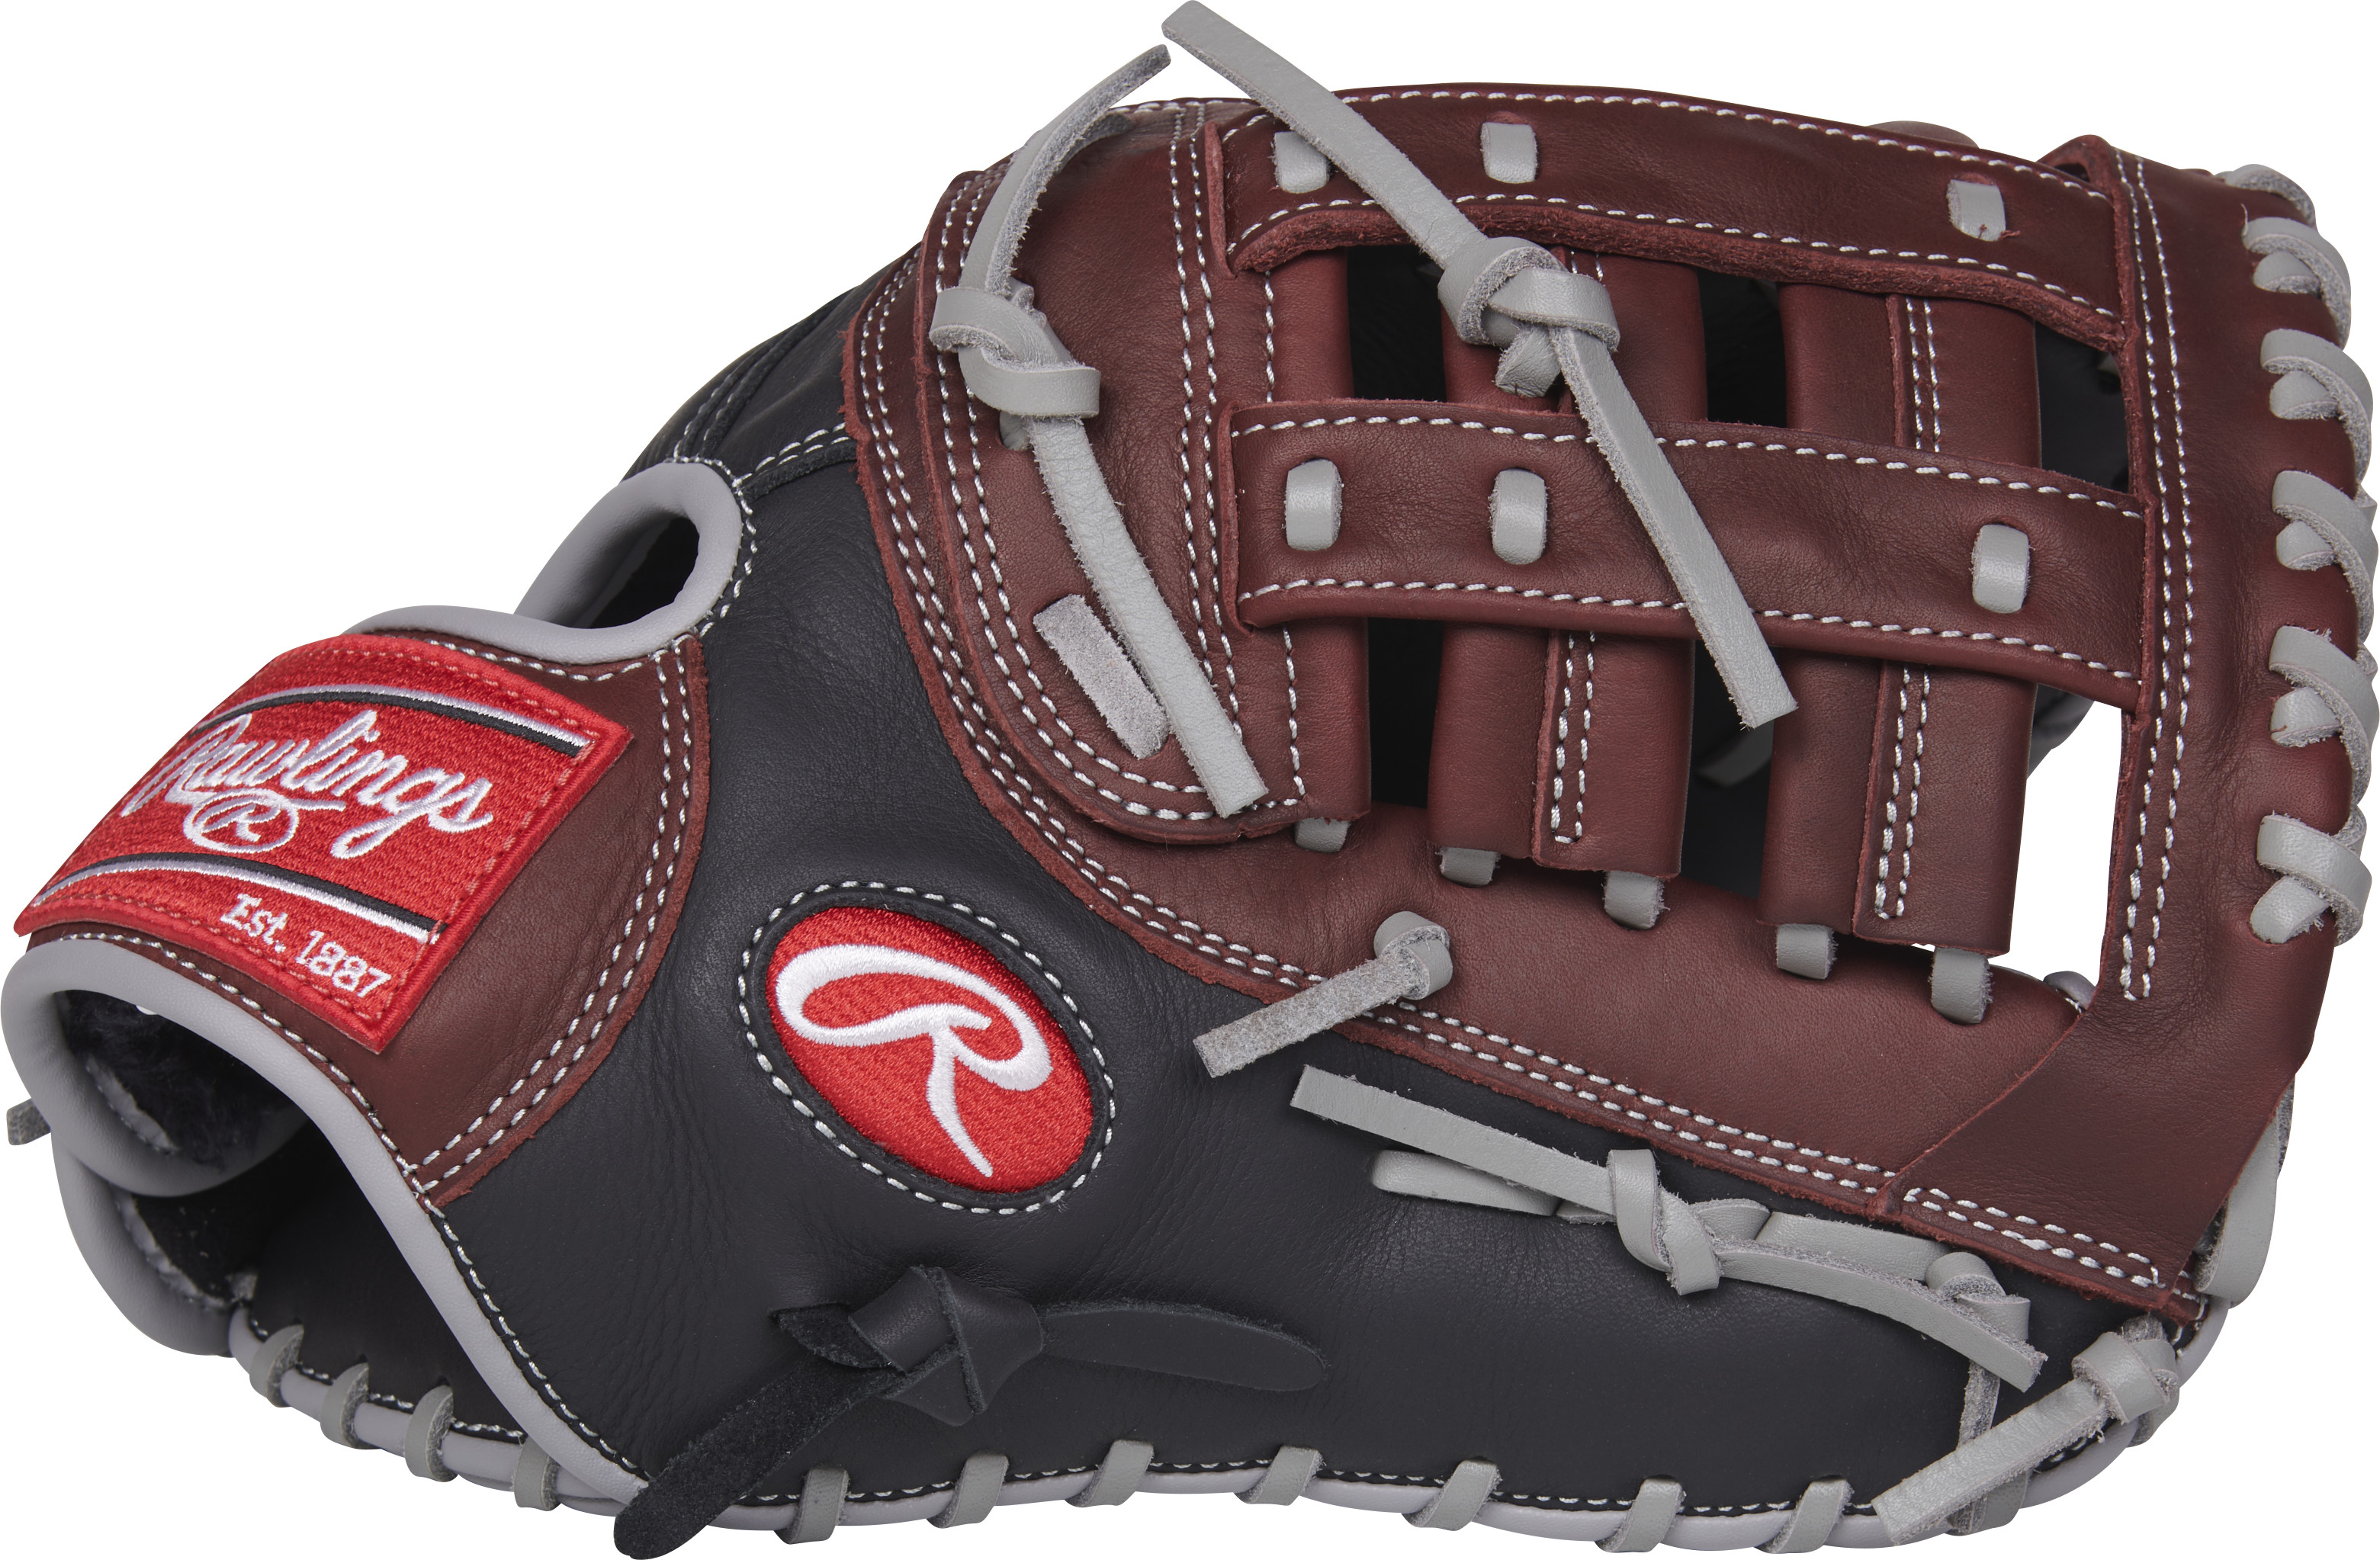 http://www.bestbatdeals.com/images/gloves/rawlings/R9FM18BSG-3.jpg